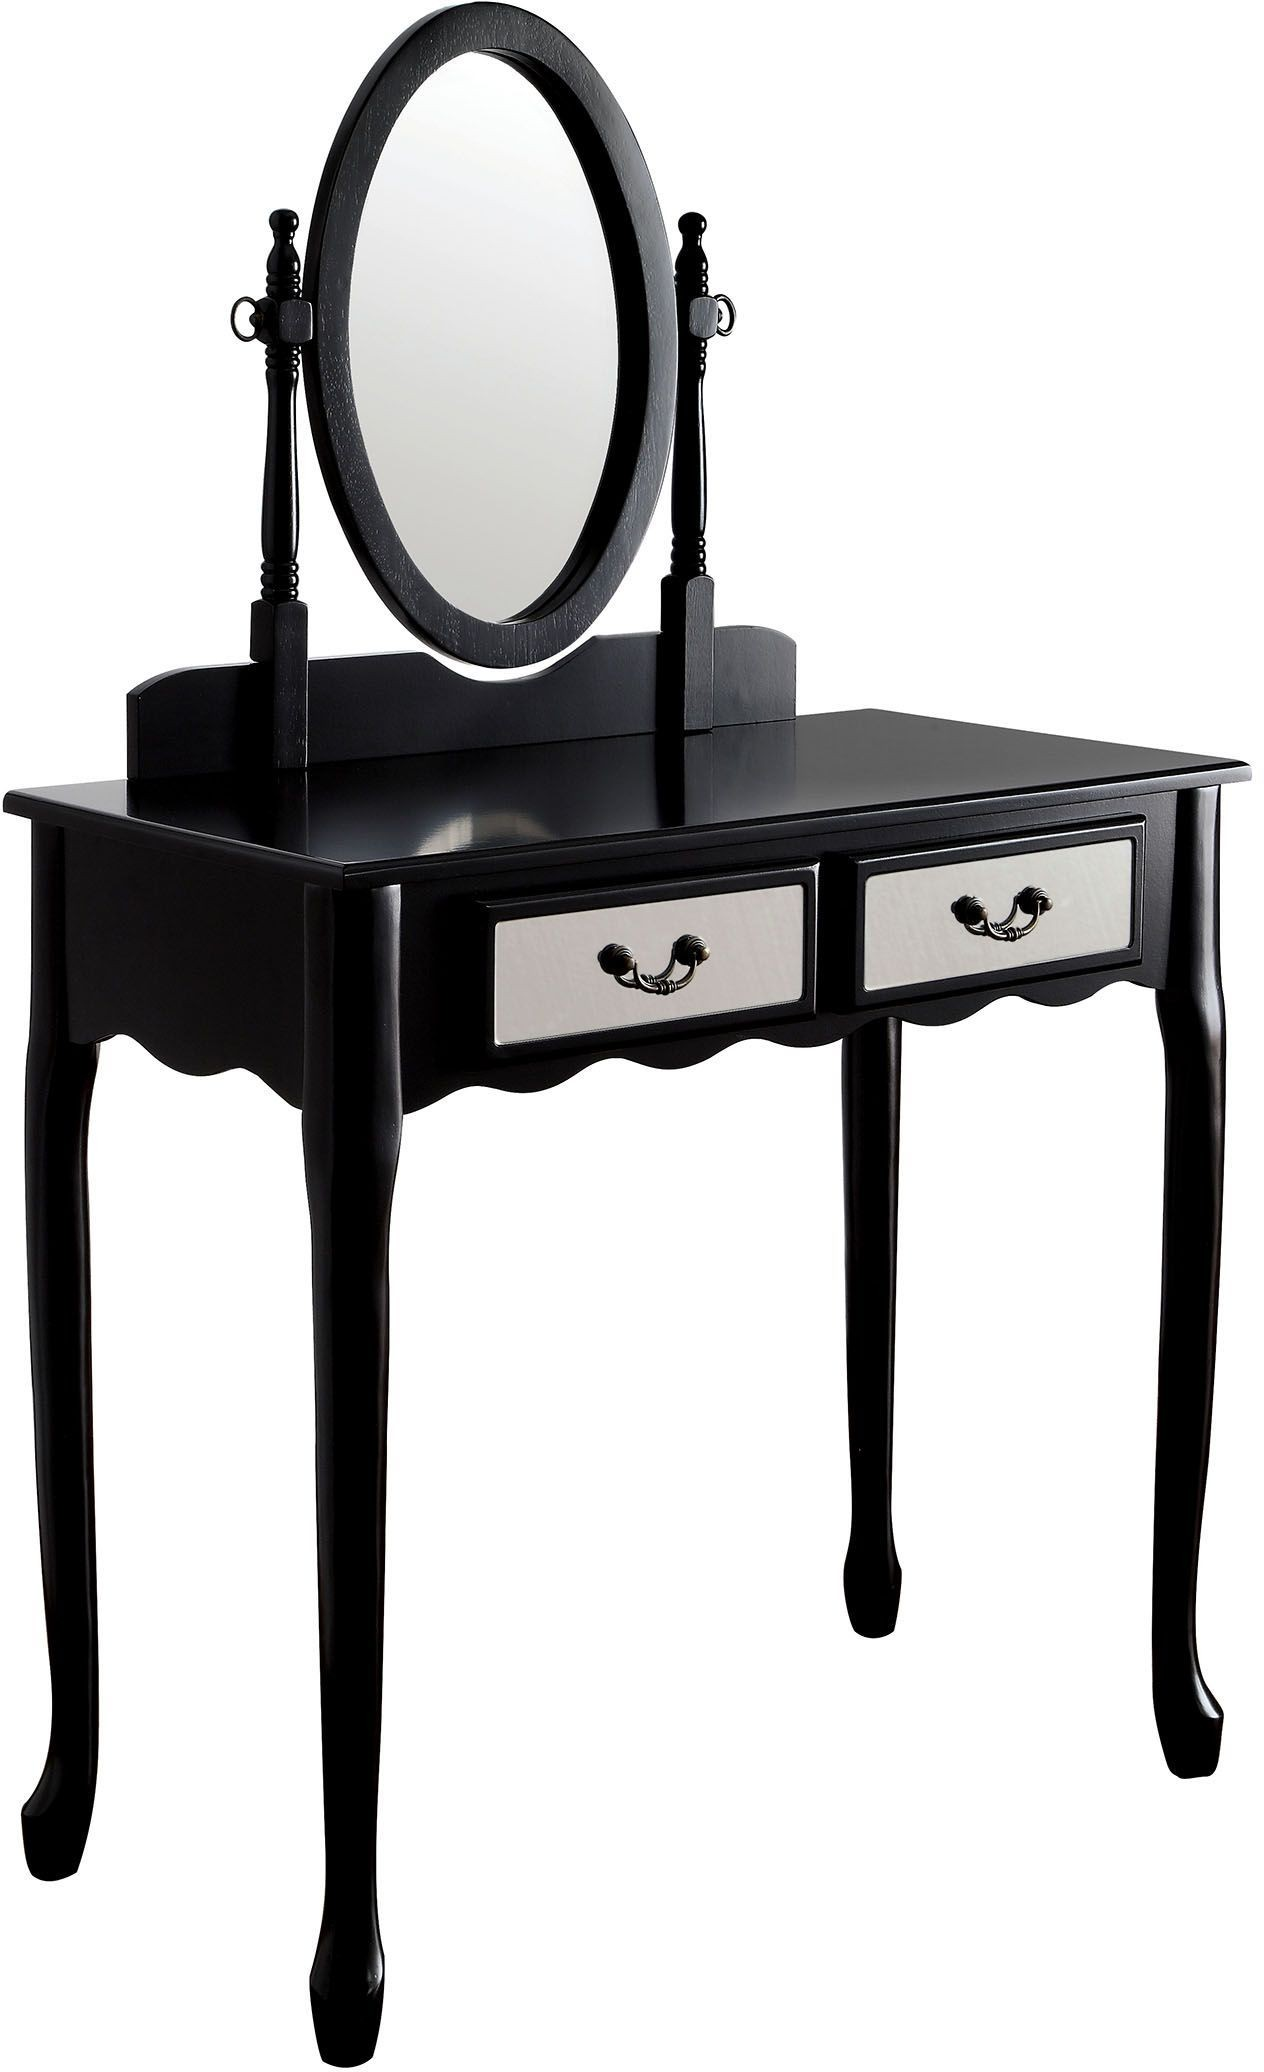 Adriana black vanity with stool cm dk6431bk furniture of america - Black and white vanity stool ...